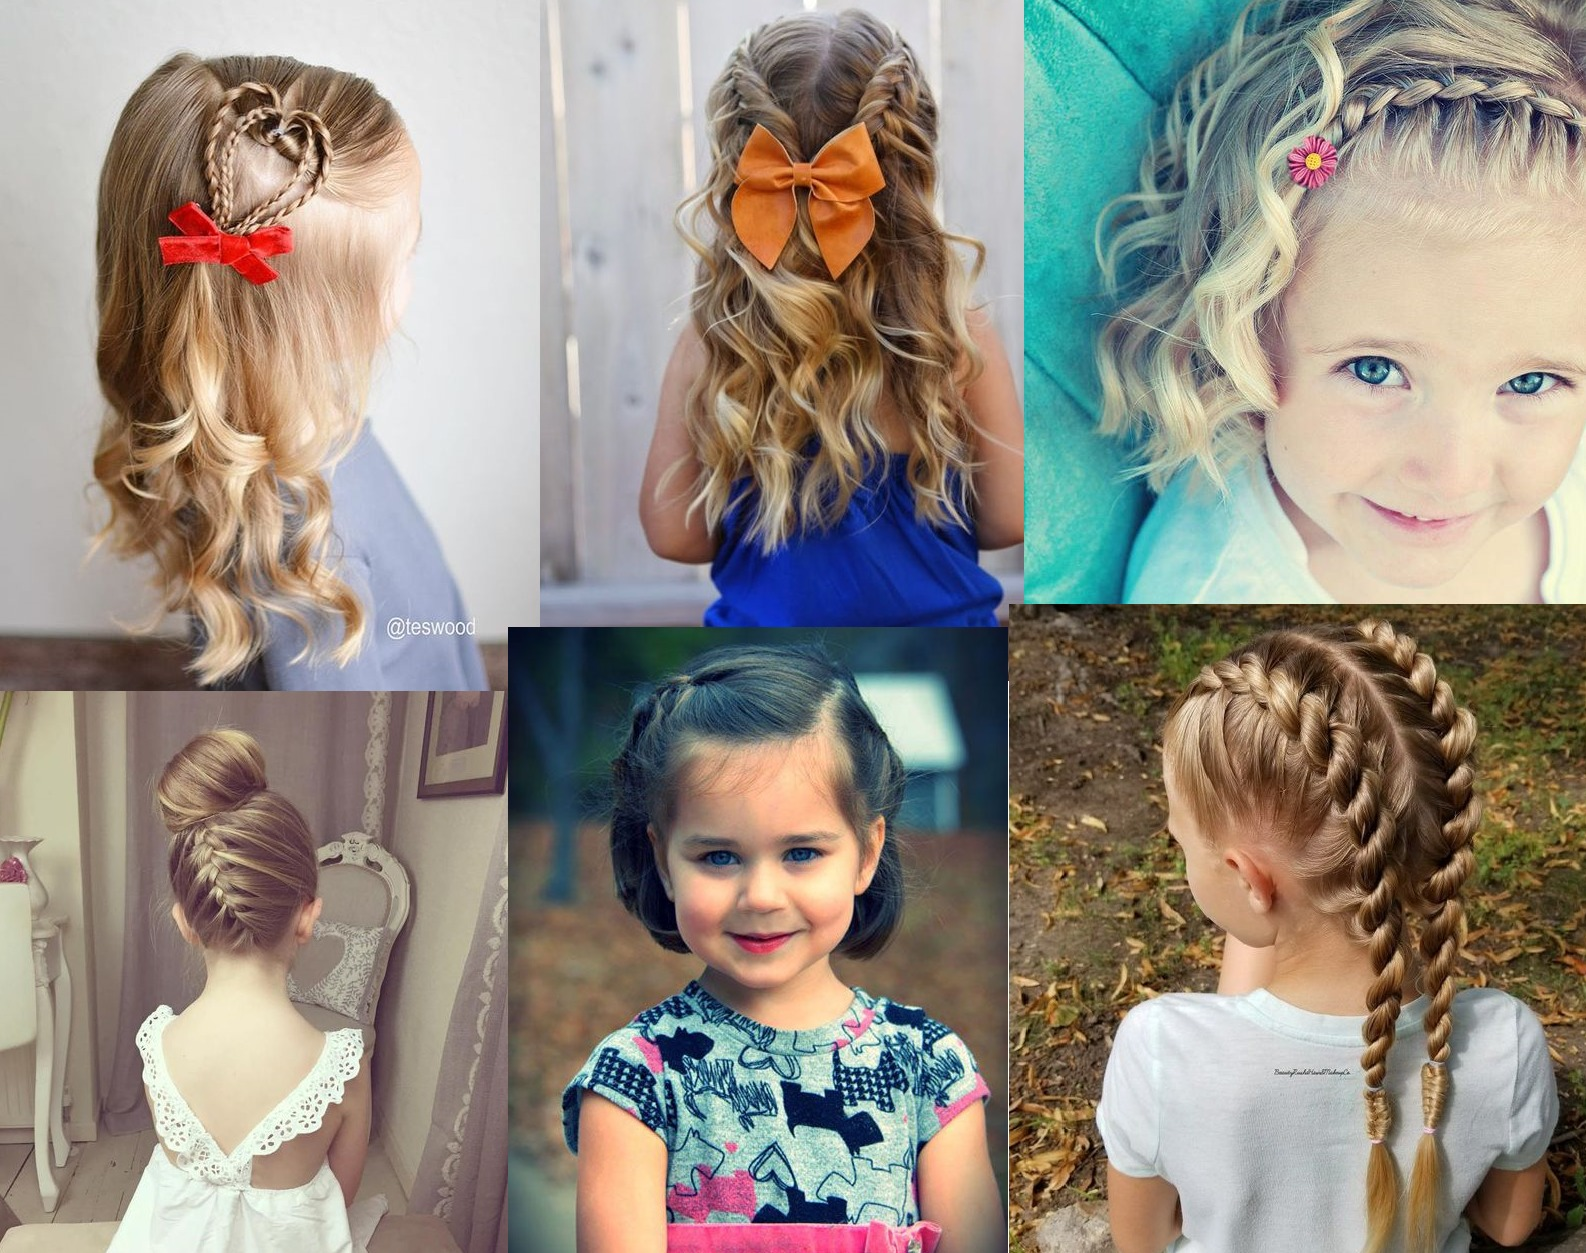 30 Cute Braided Hairstyles For Little Girls Girls - Hairstyles For Girls